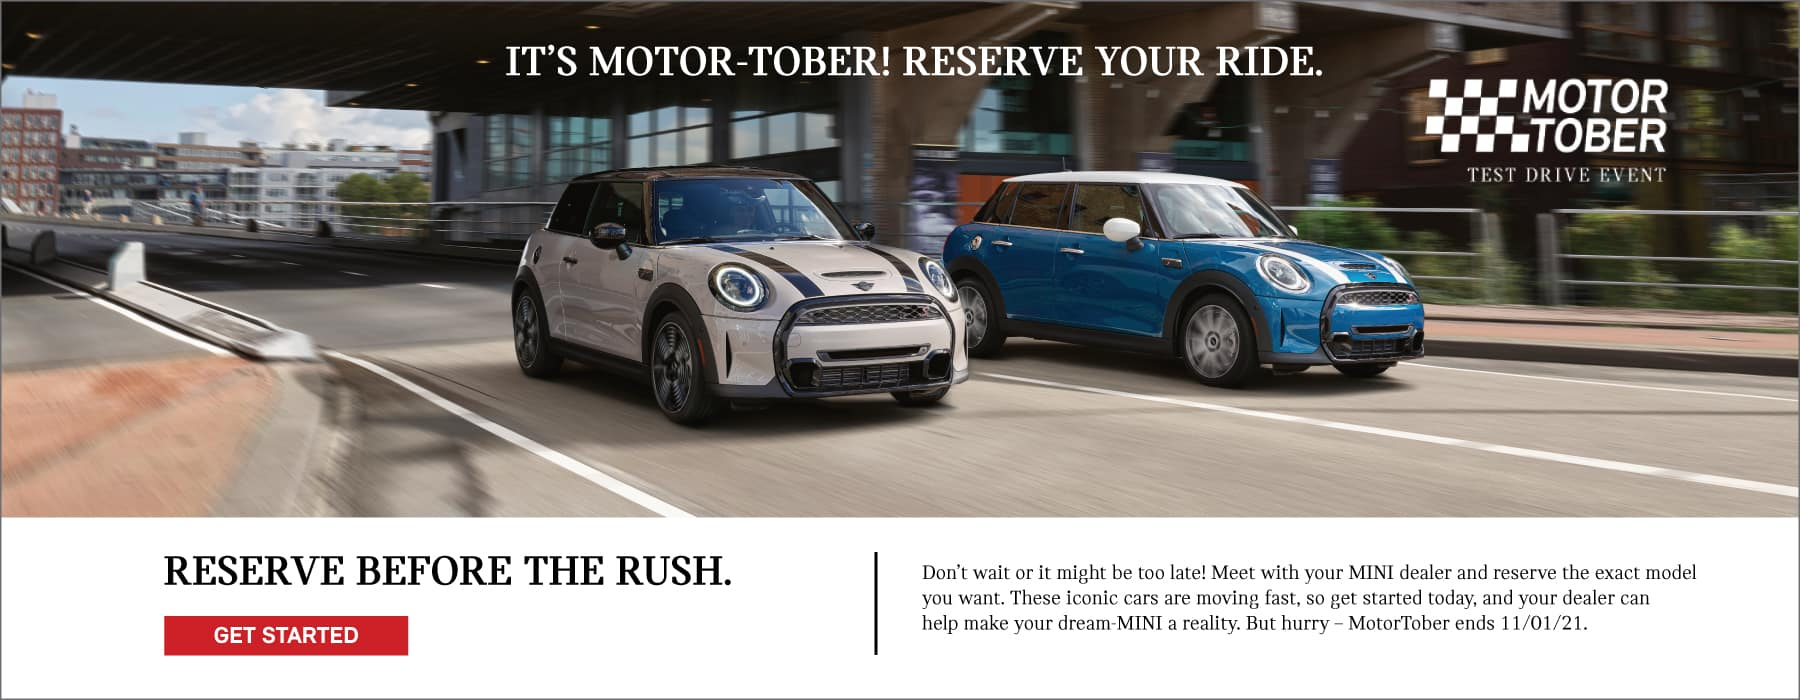 Its Motor-Tober! reserve your ride. Reserve before the rush. Dont wait or it might be too late! Meet with a MINI motoring advisor and reserve the exact model you want. These iconic cars are moving fast. Let us make your dream-MINI a reality. But hurry - MotorTober ends 11/01/21. Click to get started. Image shows two 2022 MINI vehicles driving down the street. MotorTober Test Drive Event logo is placed over the image.